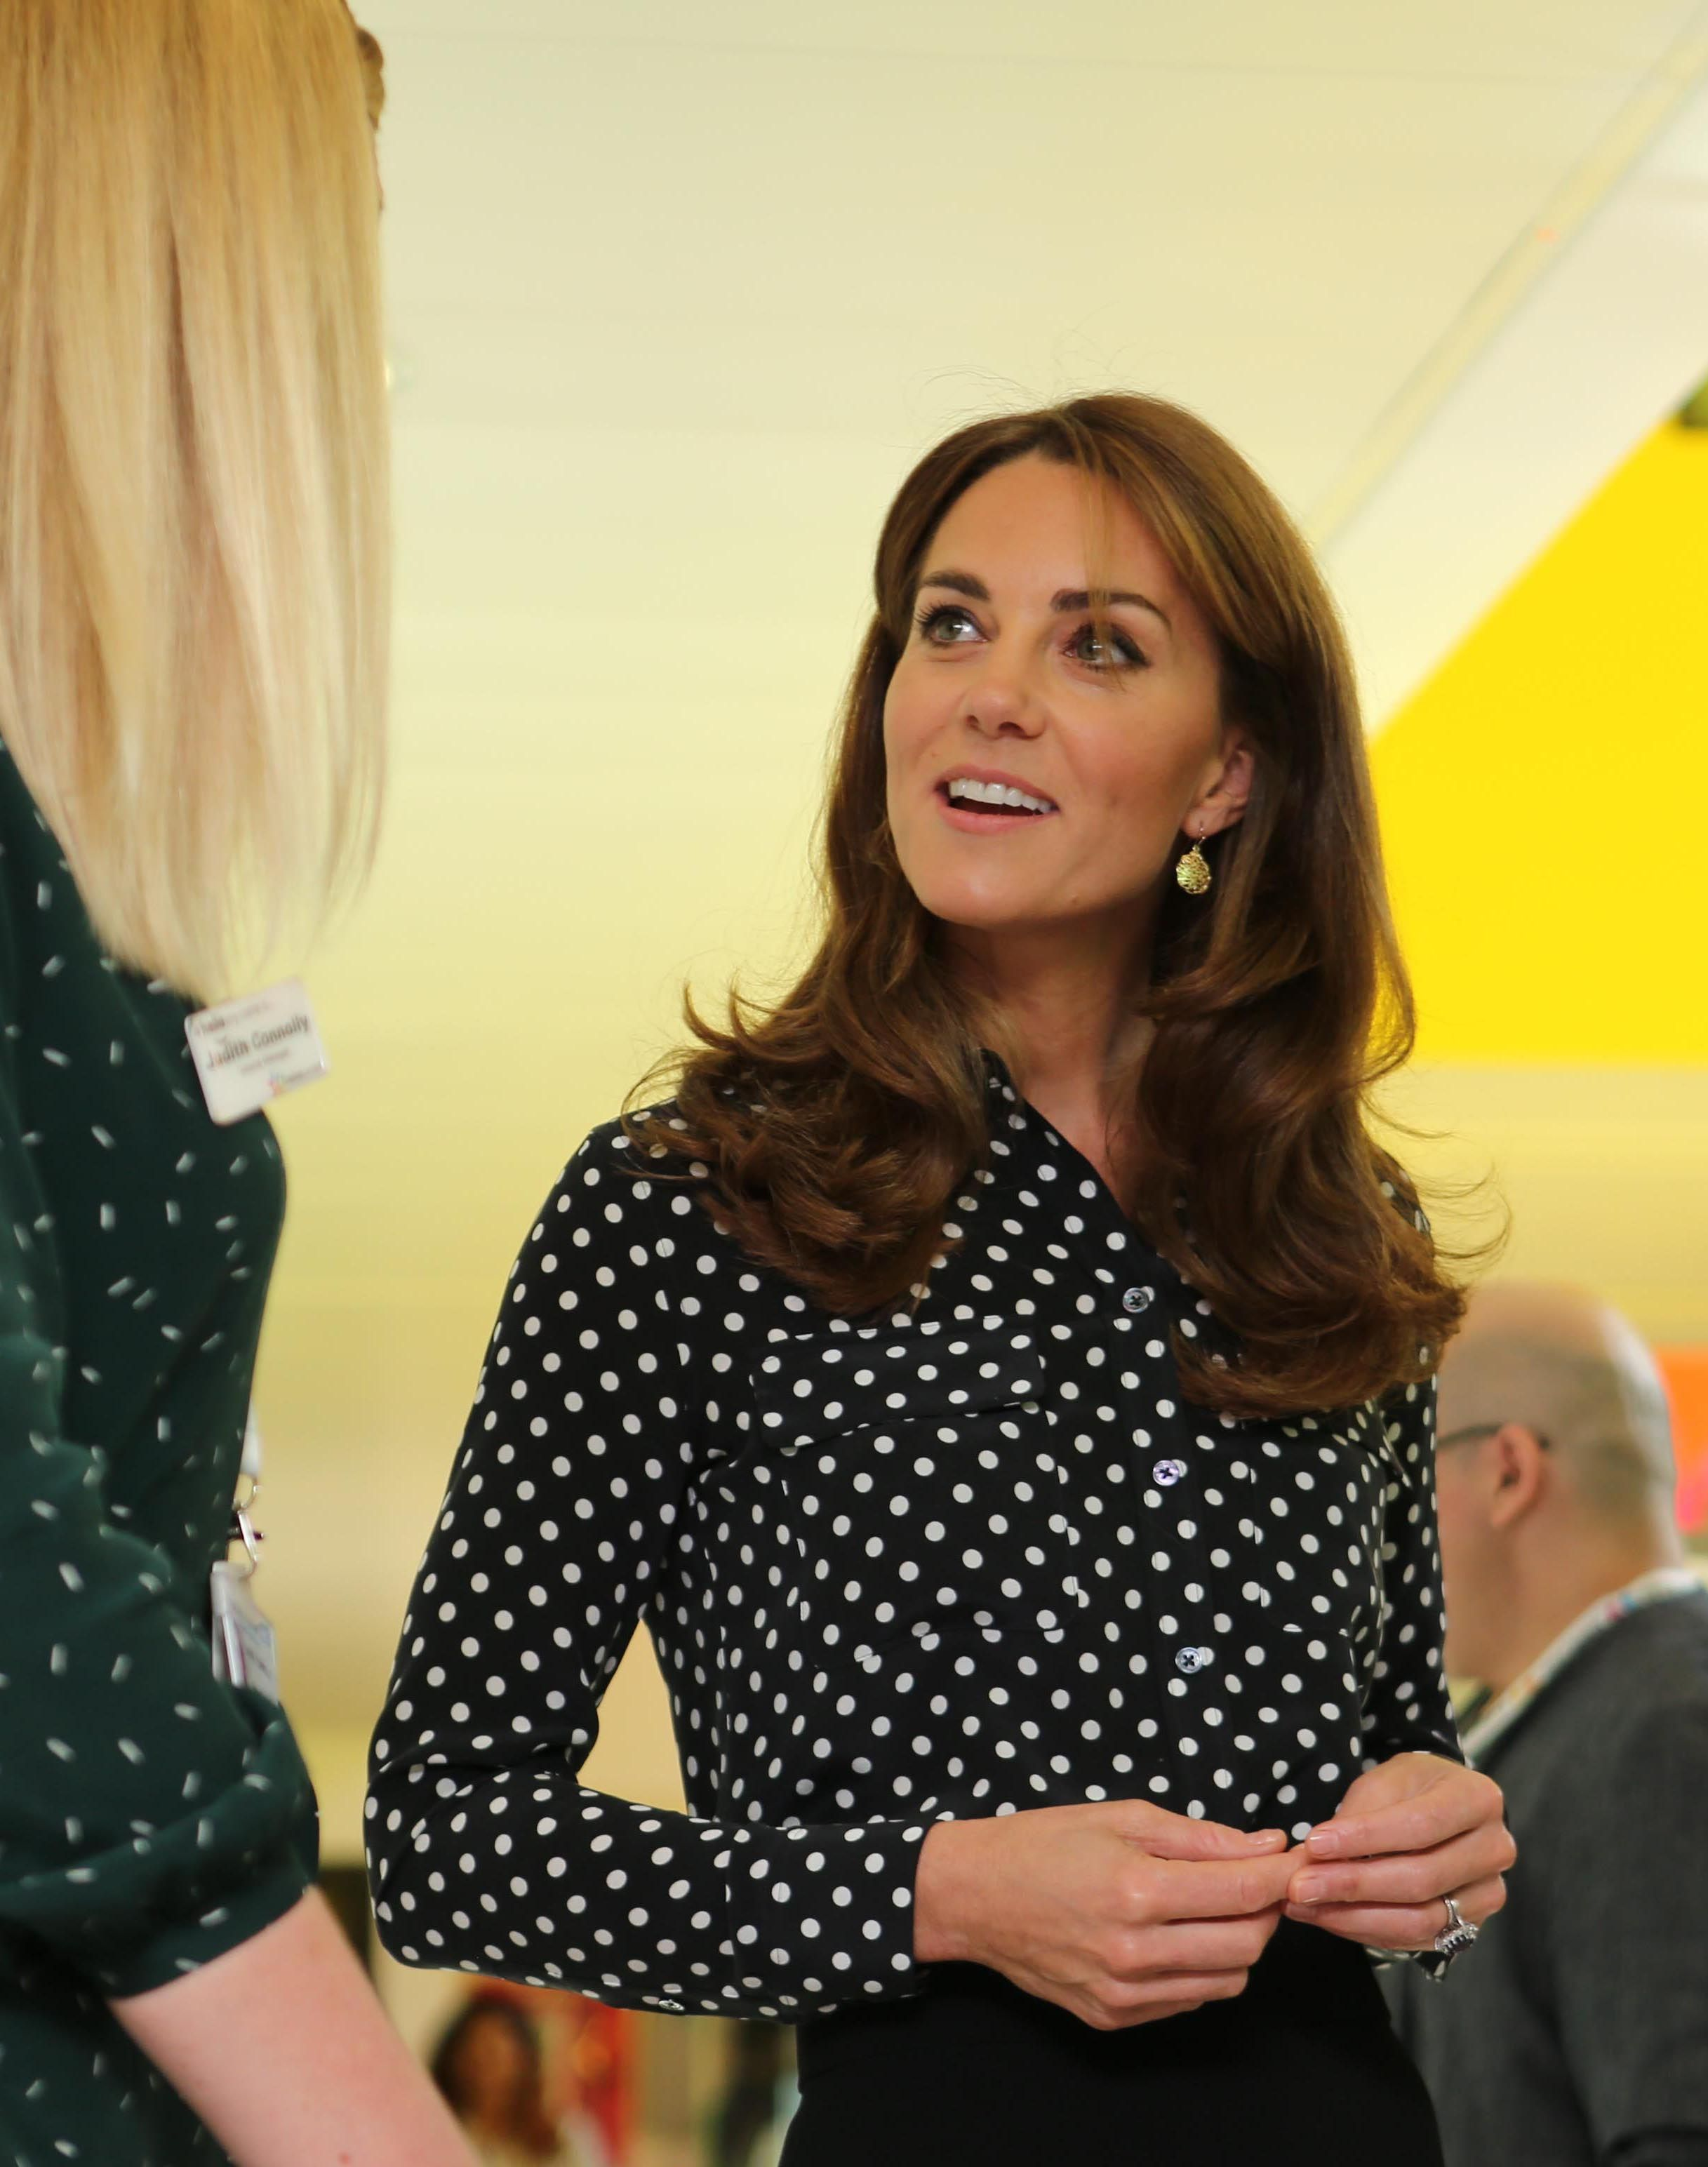 The Duchess of Cambridge steps out in a chic polka dot shirt for surprise engagement